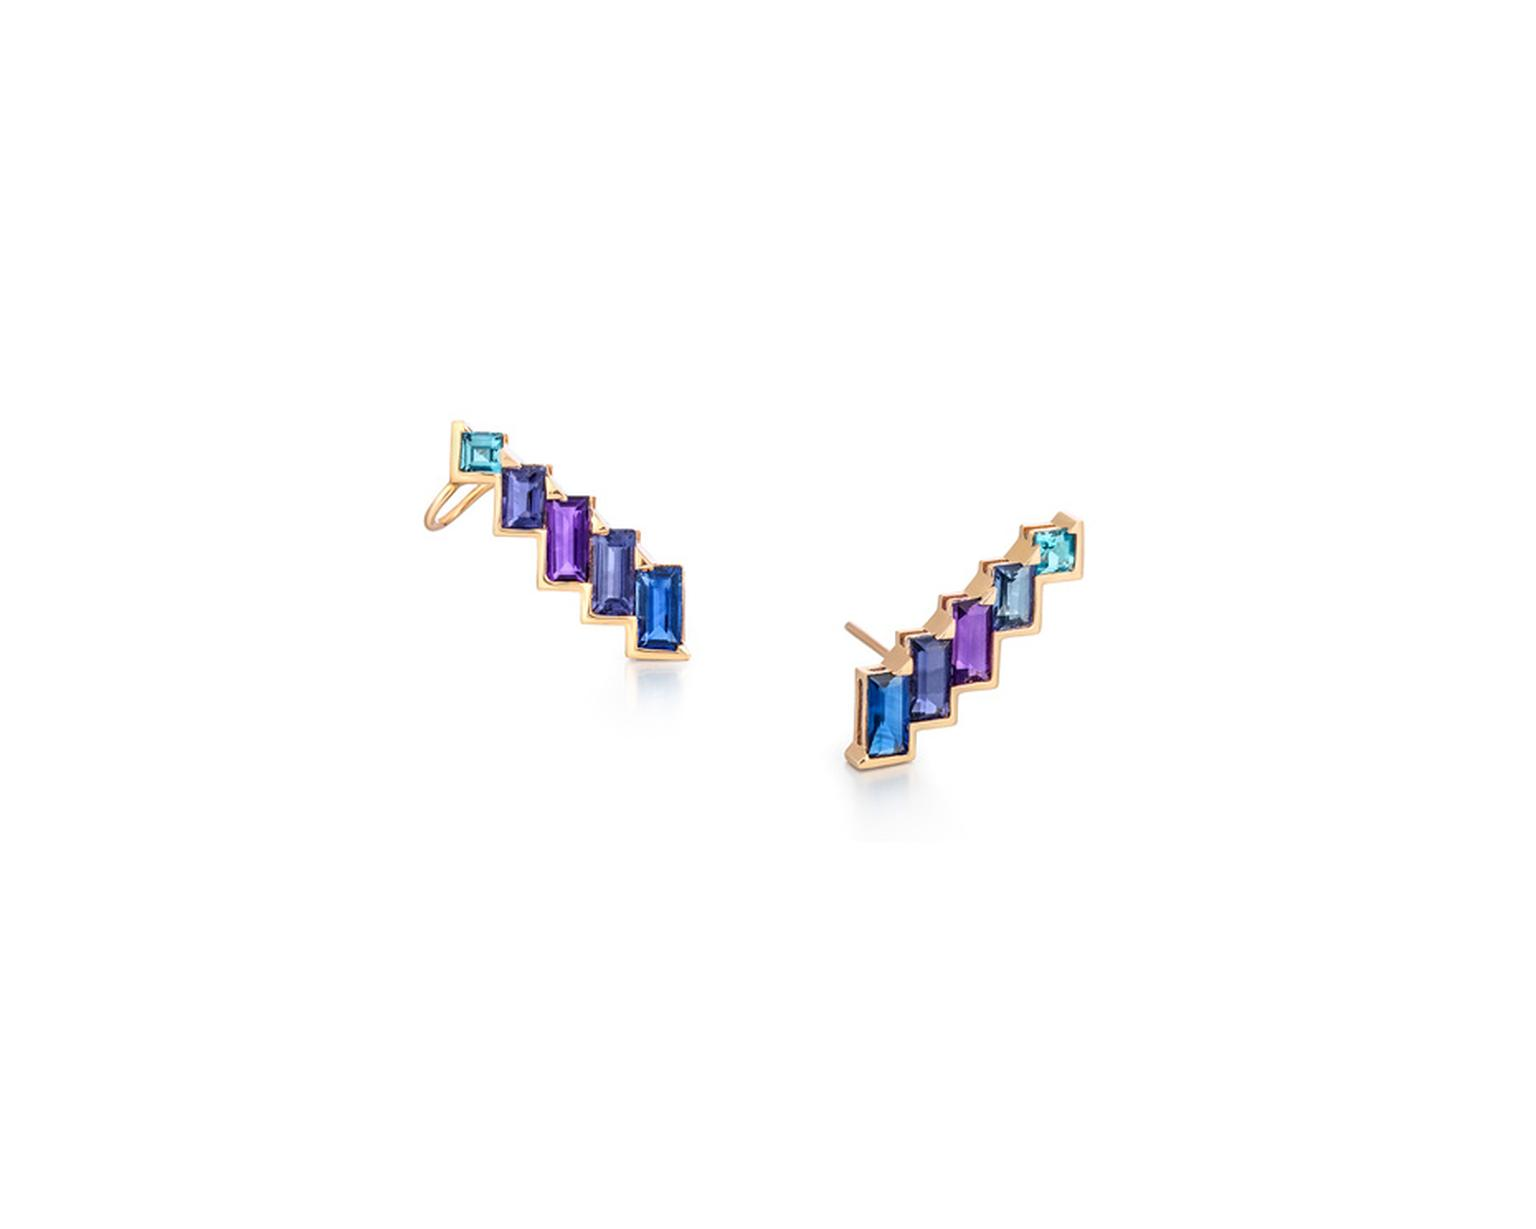 Earring cuffs from Tomasz Donocik's Electric Night collection.